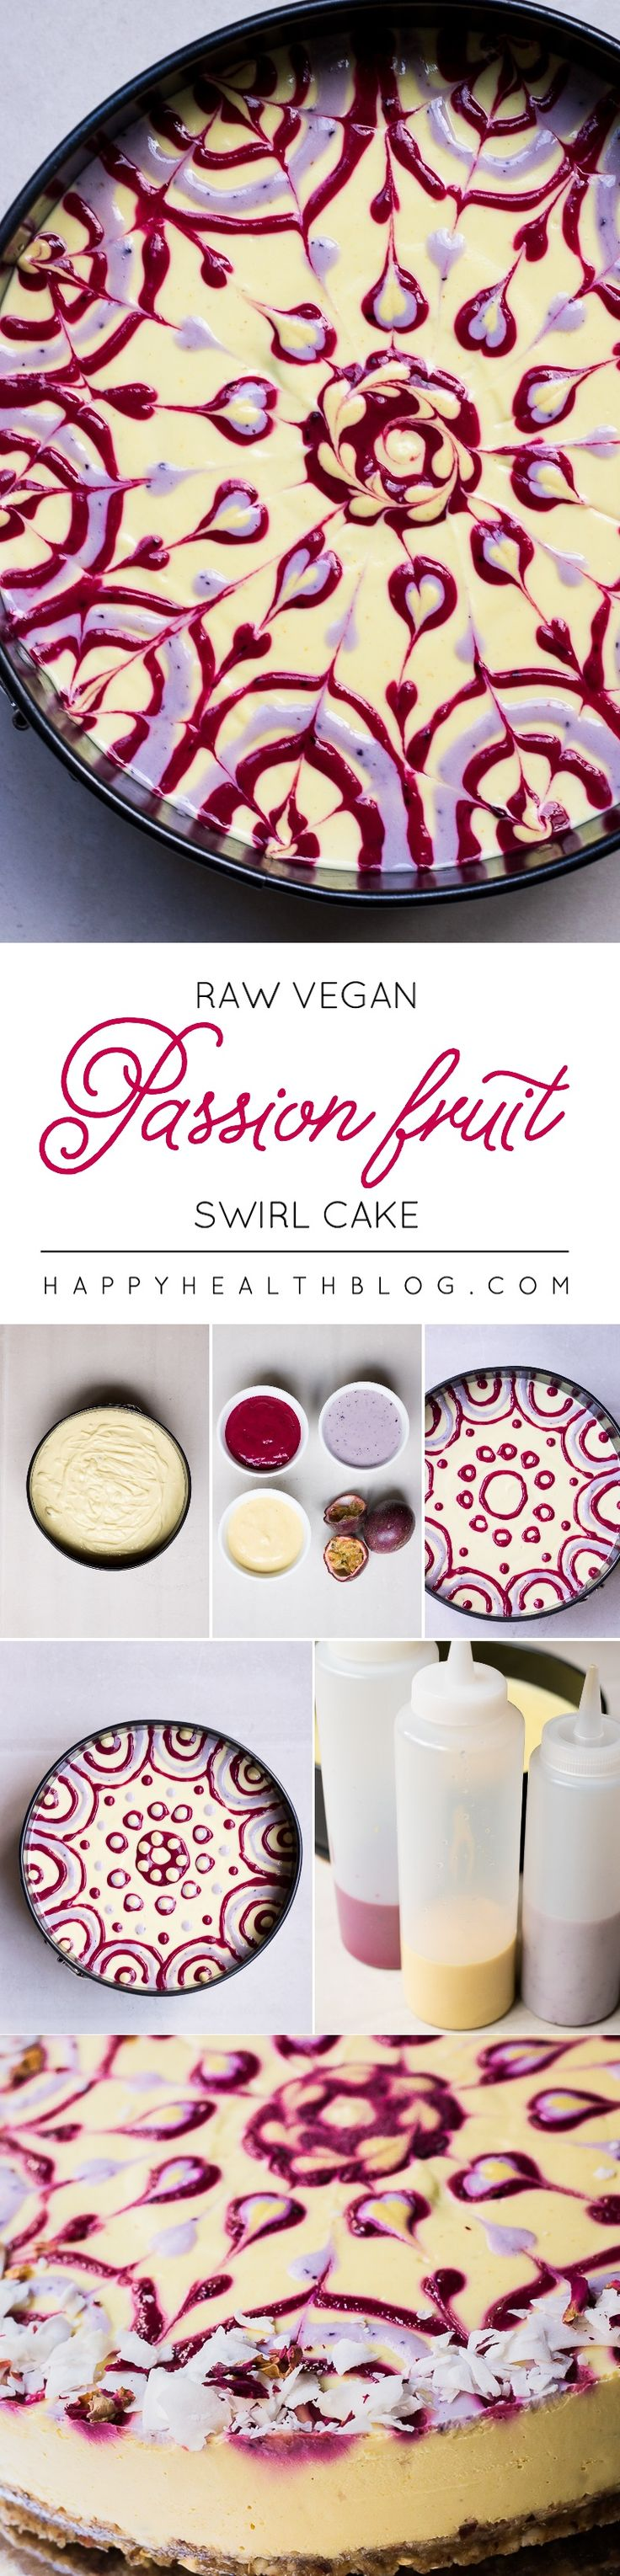 Dessert Recipe: Raw Passion Fruit Swirl Cake #vegan #recipes #healthy #plantbased #glutenfree #whatveganseat #dessert #rawfood